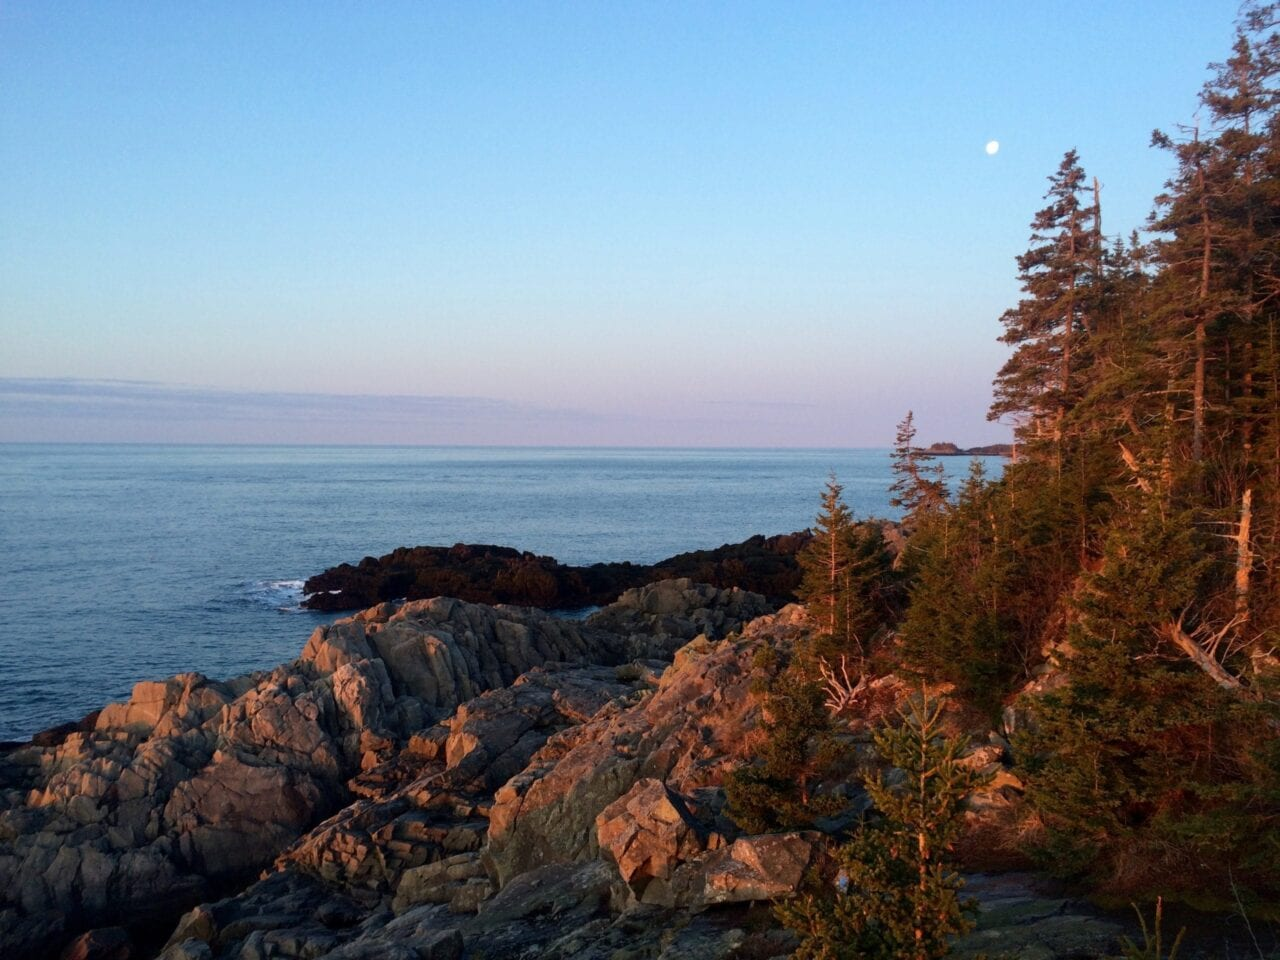 A pink sunrise appears over a rocky coastline and blue ocean waters.